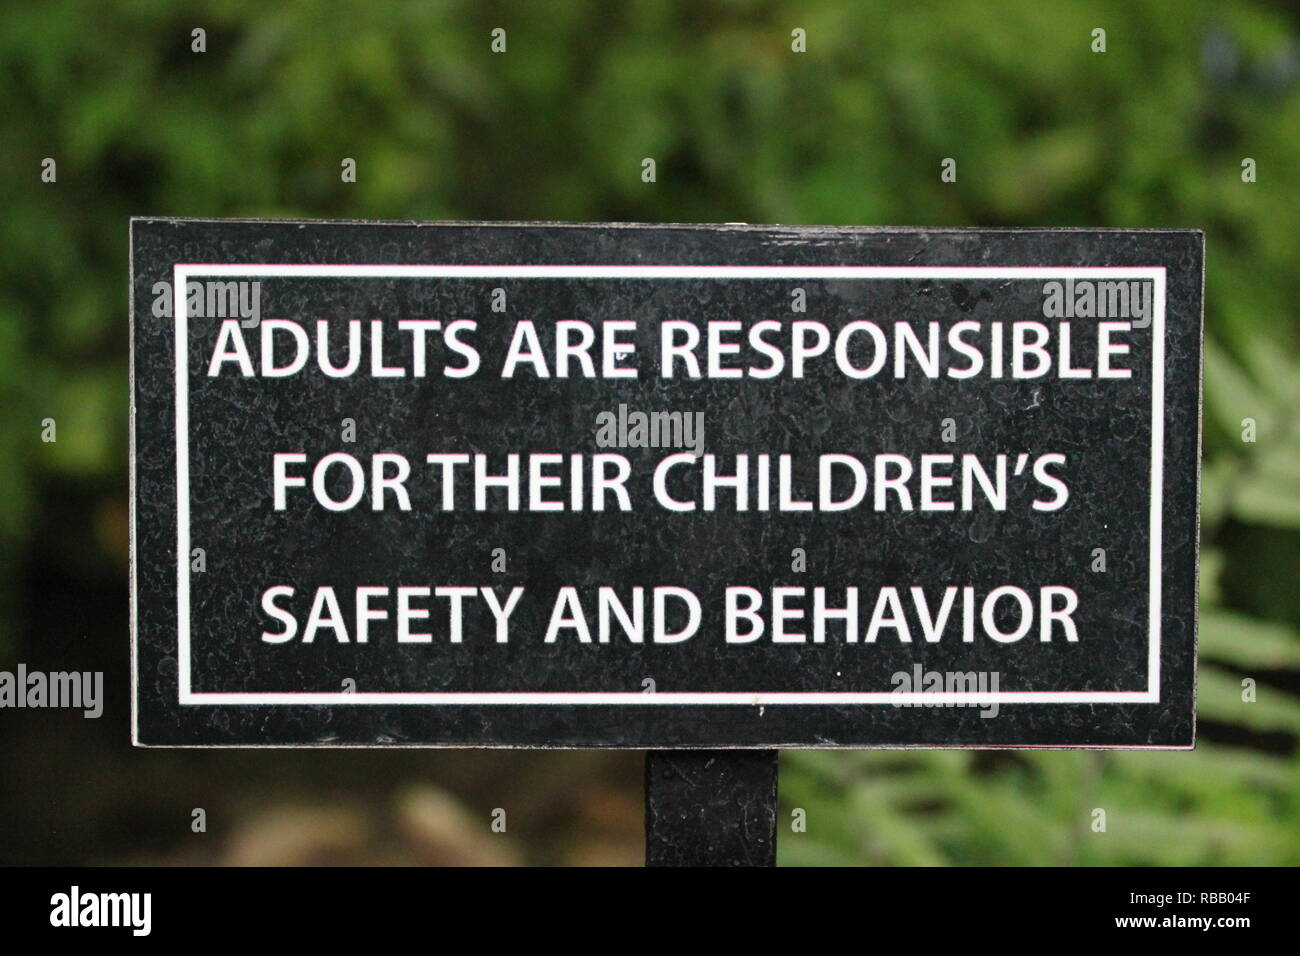 Adults are responsible for their children's safety and behavior sign posted at the Christmas Holiday flower Show at the Lincoln Park Conservatory in Chicago, Illinois, USA. - Stock Image